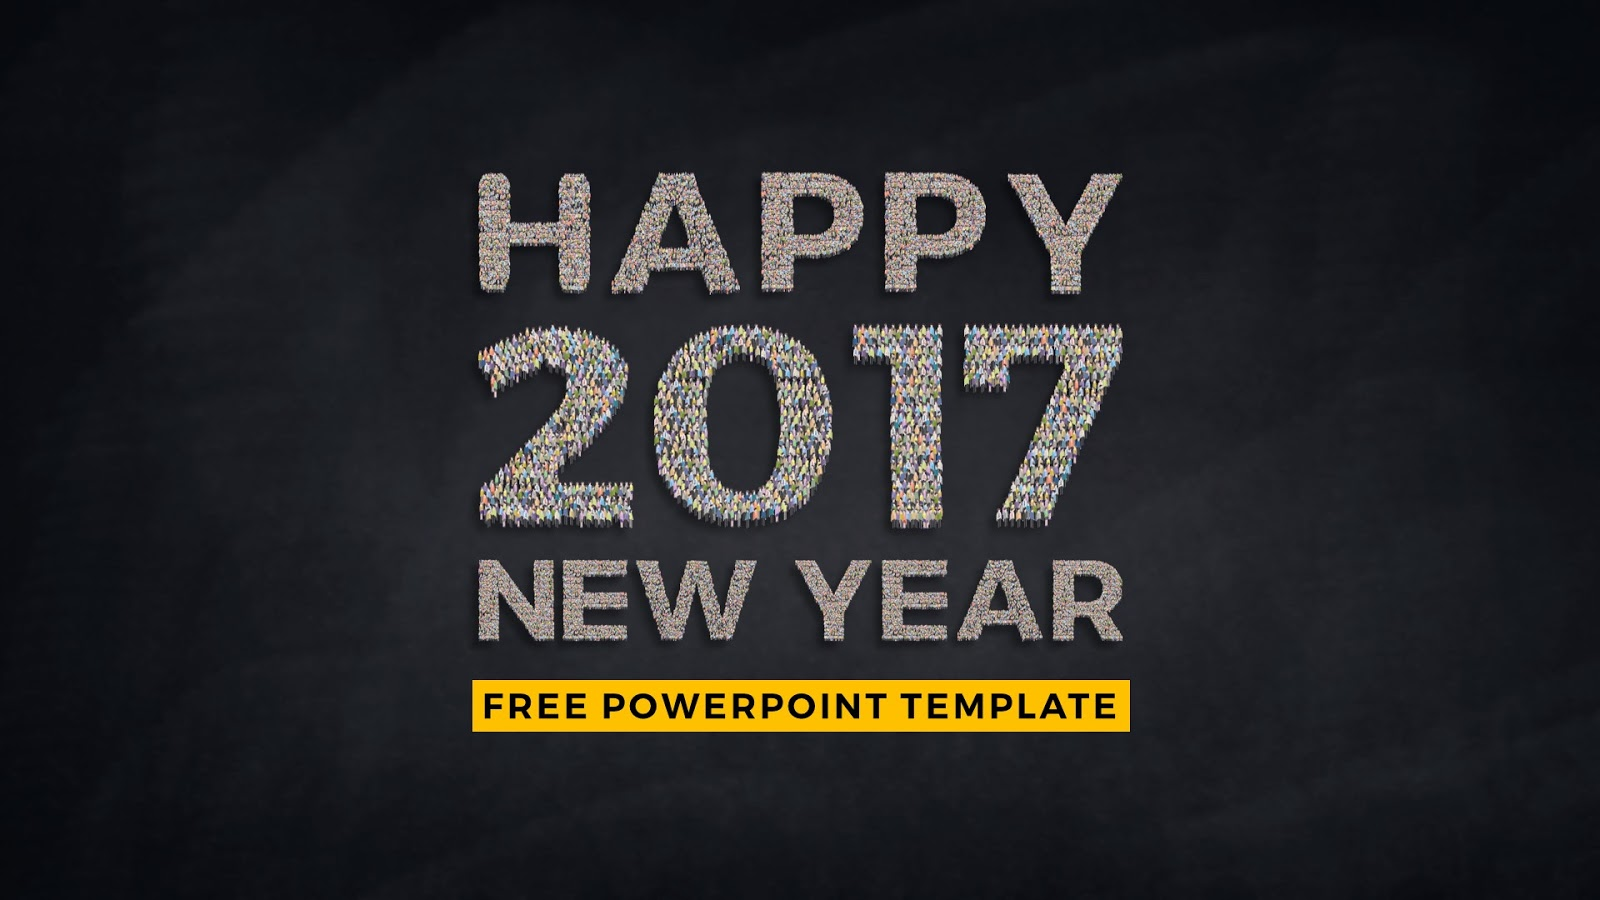 new year people forming characters free powerpoint template, Powerpoint templates